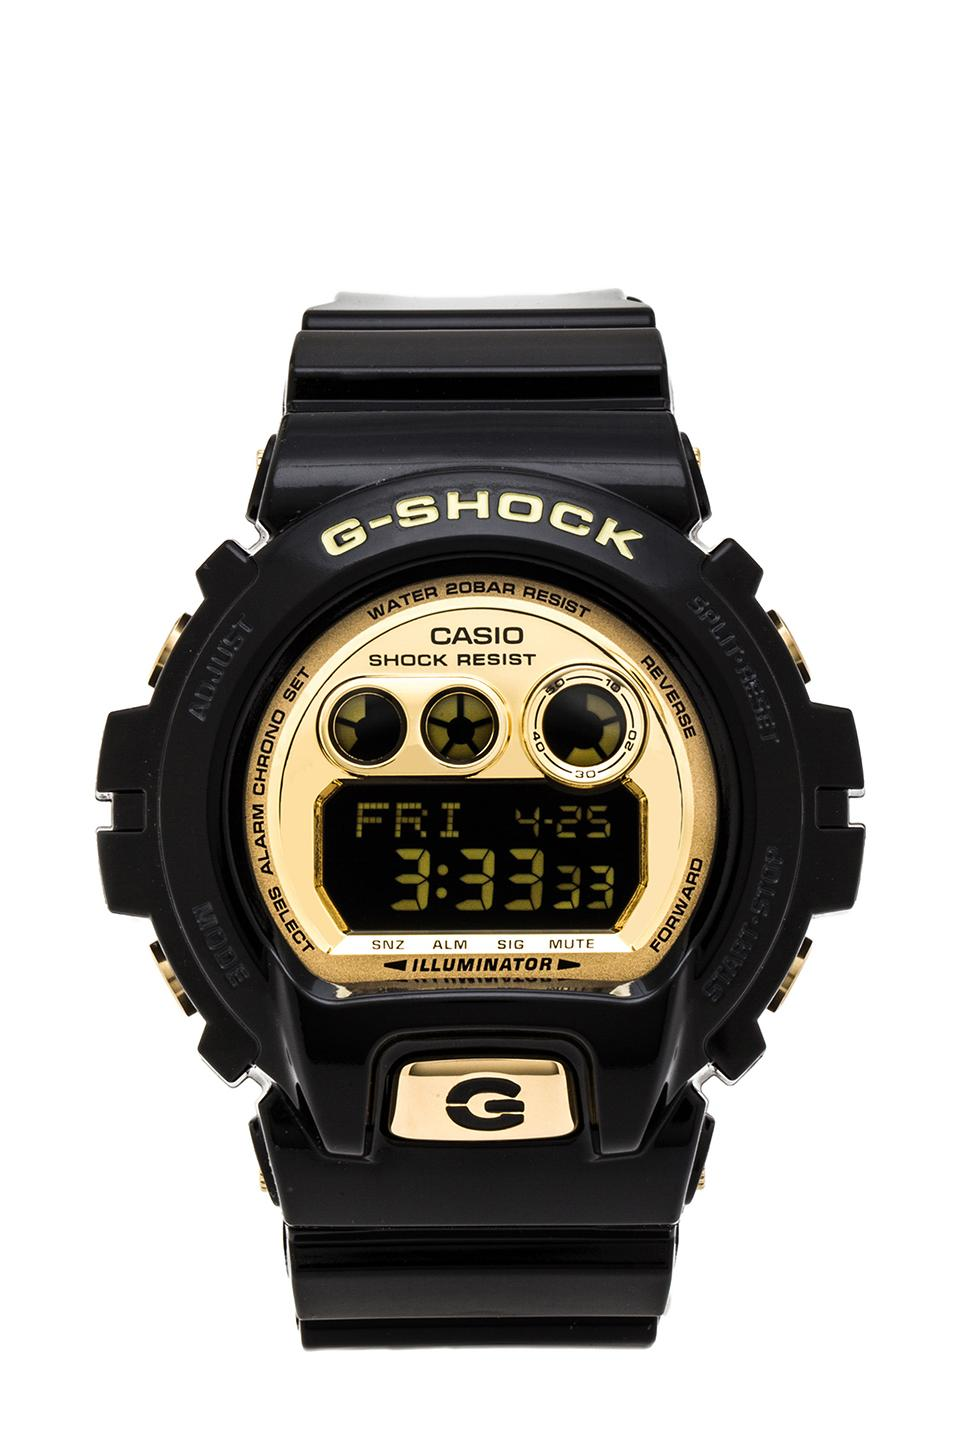 G-Shock 6900 XL in Black & Gold